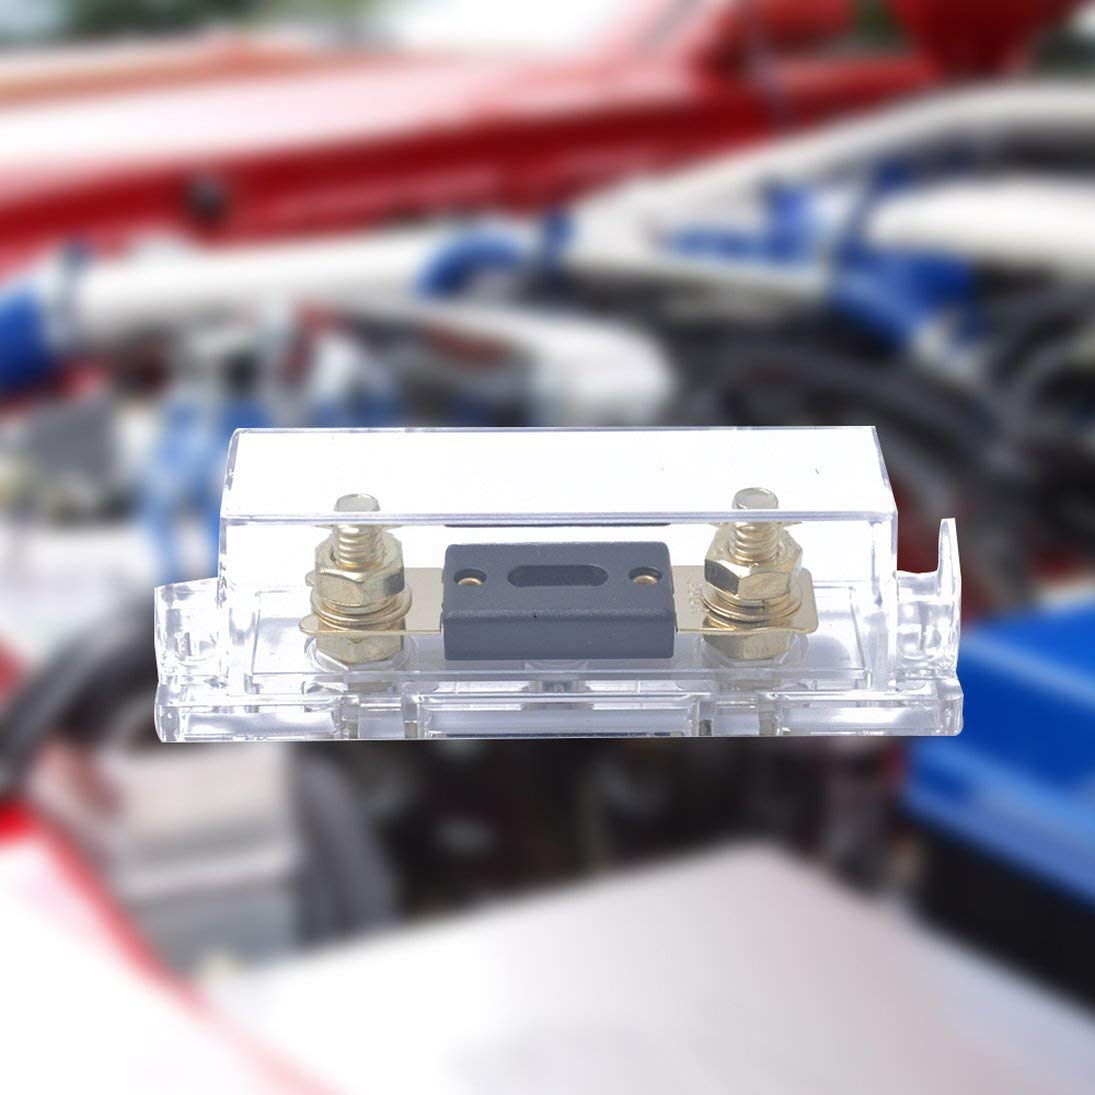 Portable 300A ANL Fuse with Fuse Holder ANL Transparent Bottom Seat Auto Accessories Replacement